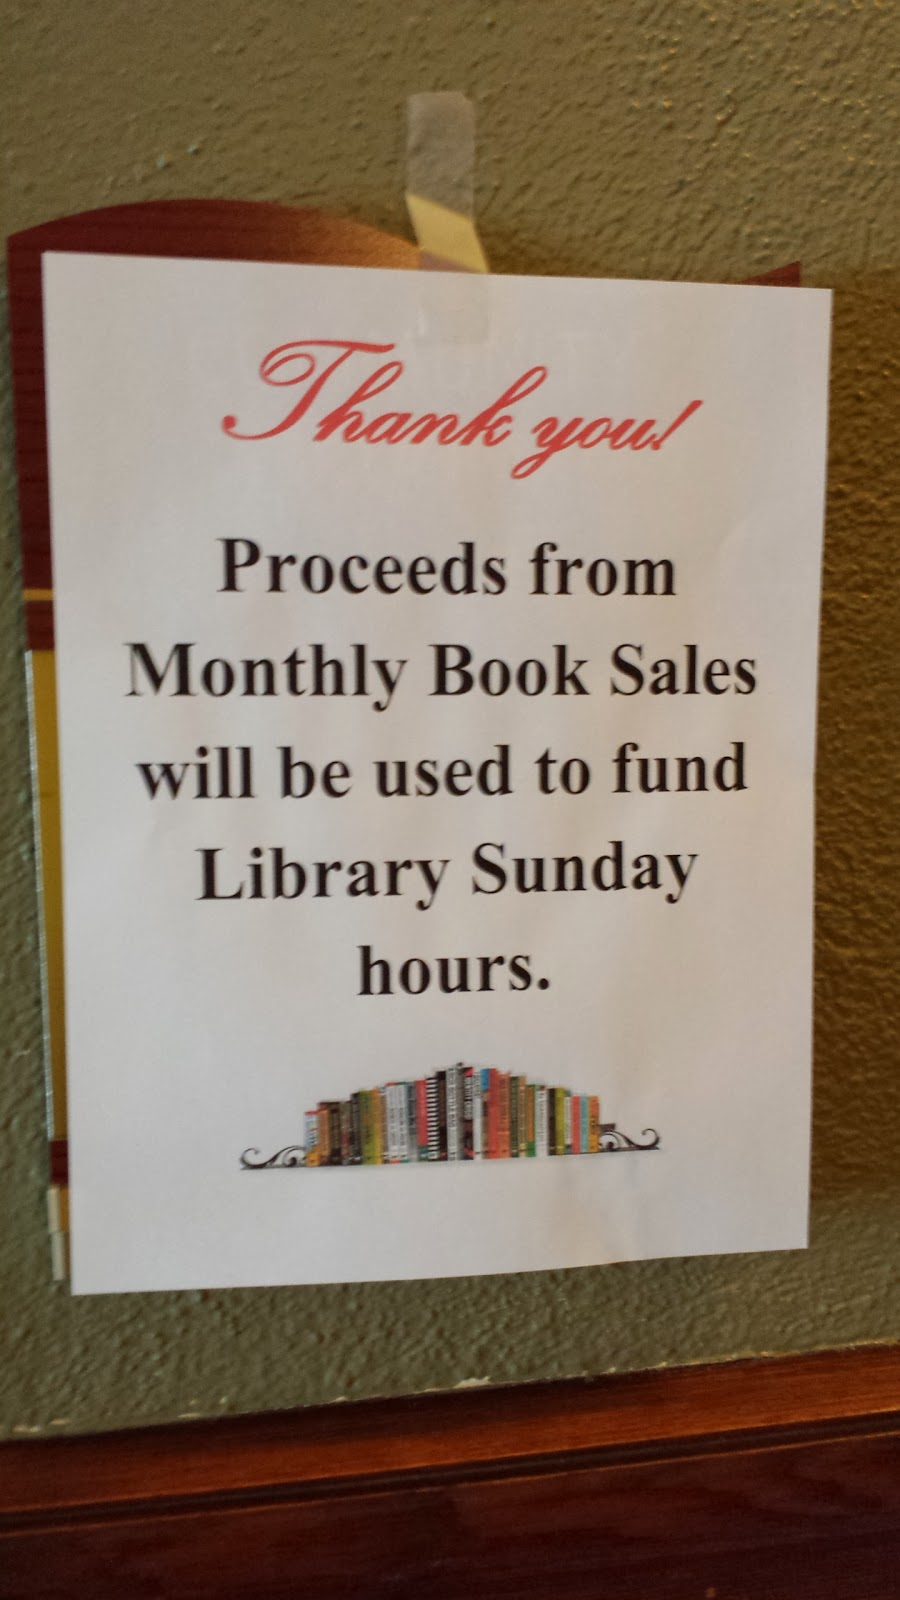 proceeds from the monthly book sales will be used to fund Sunday hours